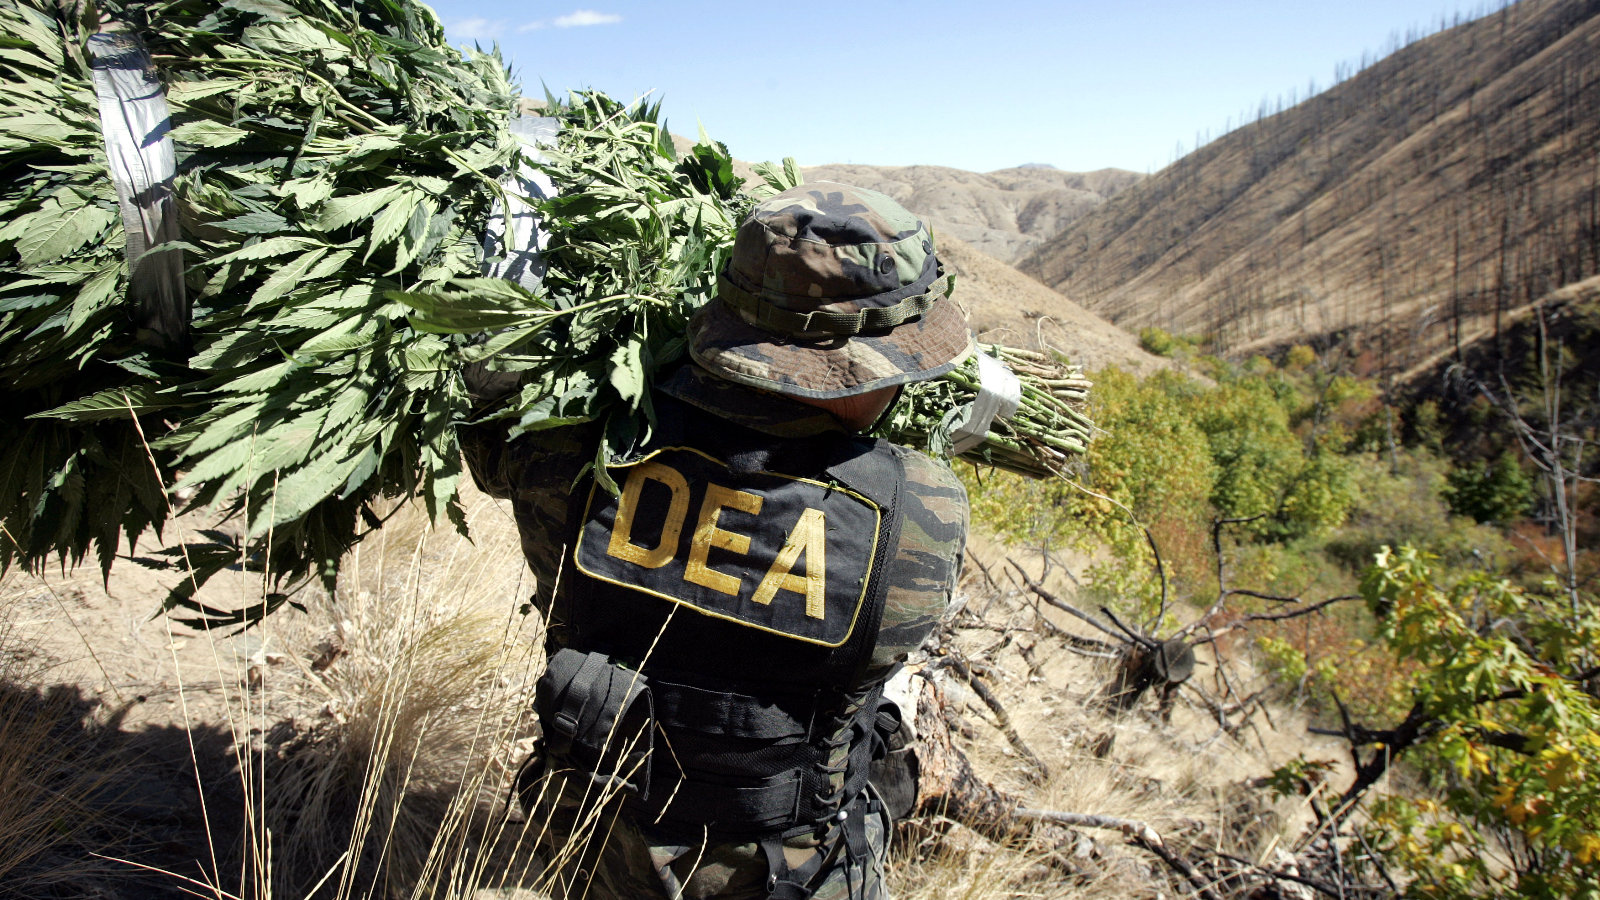 dea-obstructing-cannabis-science-for-years